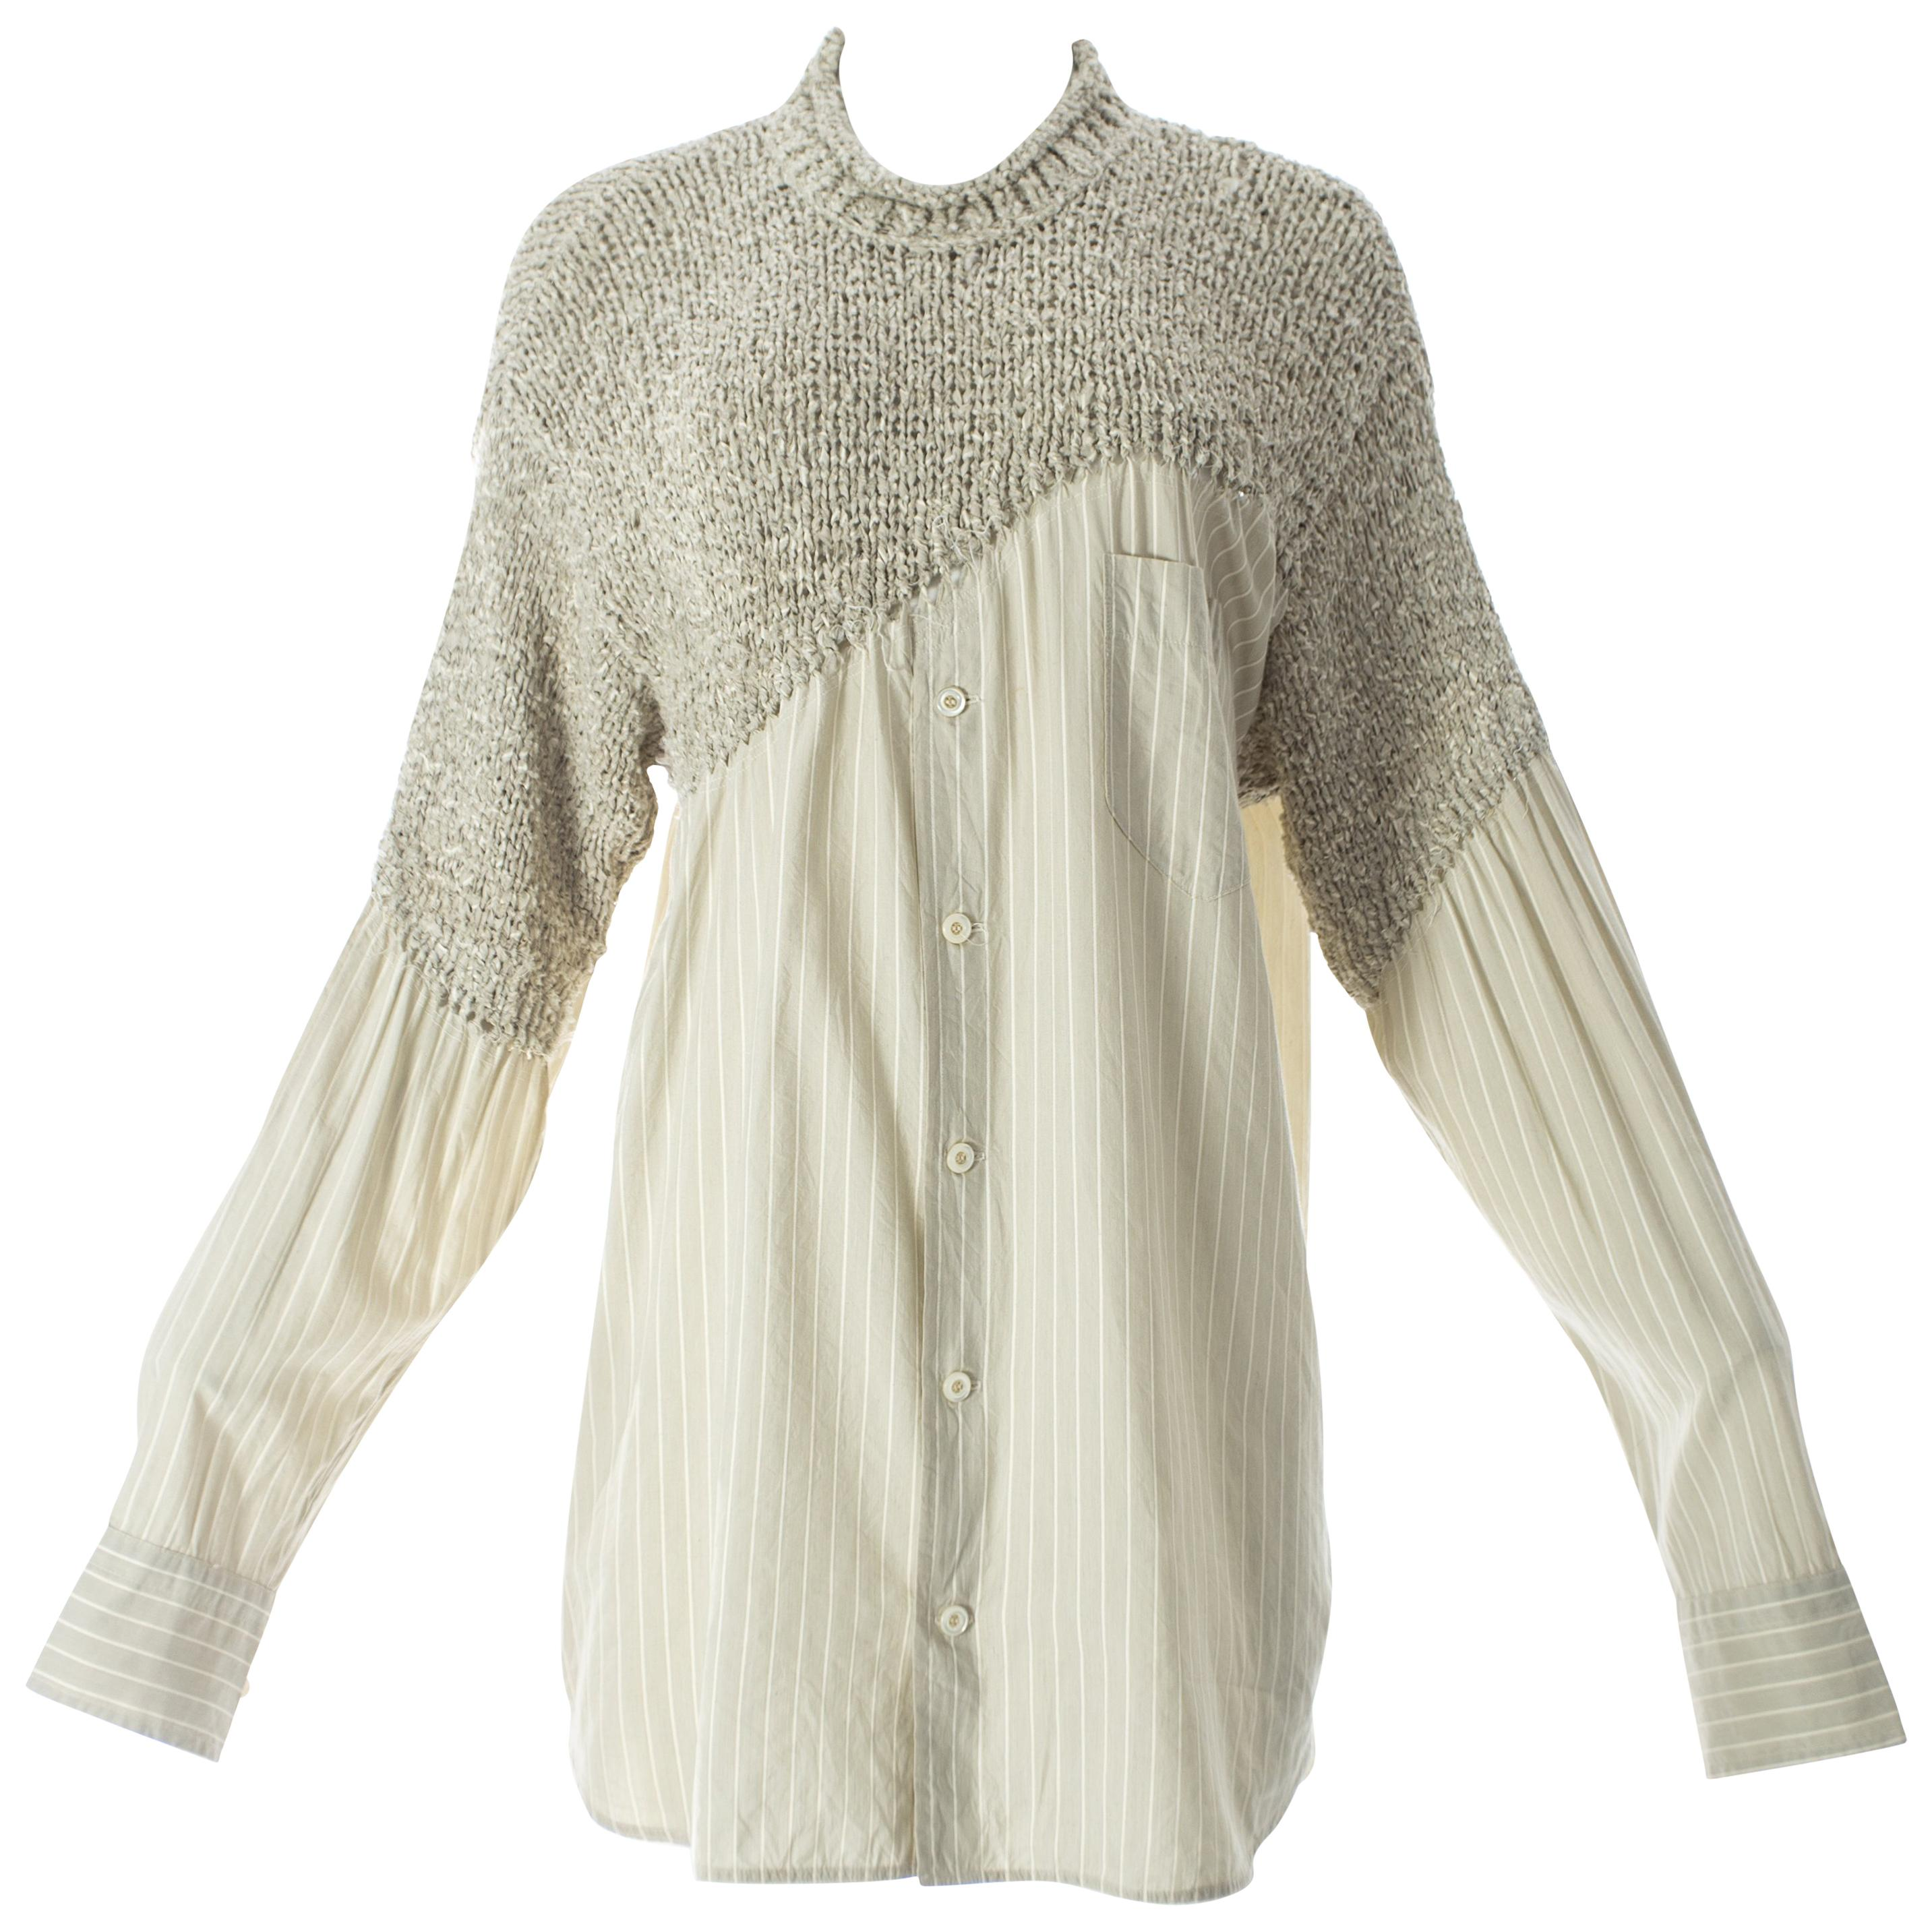 Matsuda knitted sweater with attached striped shirt, circa 1990